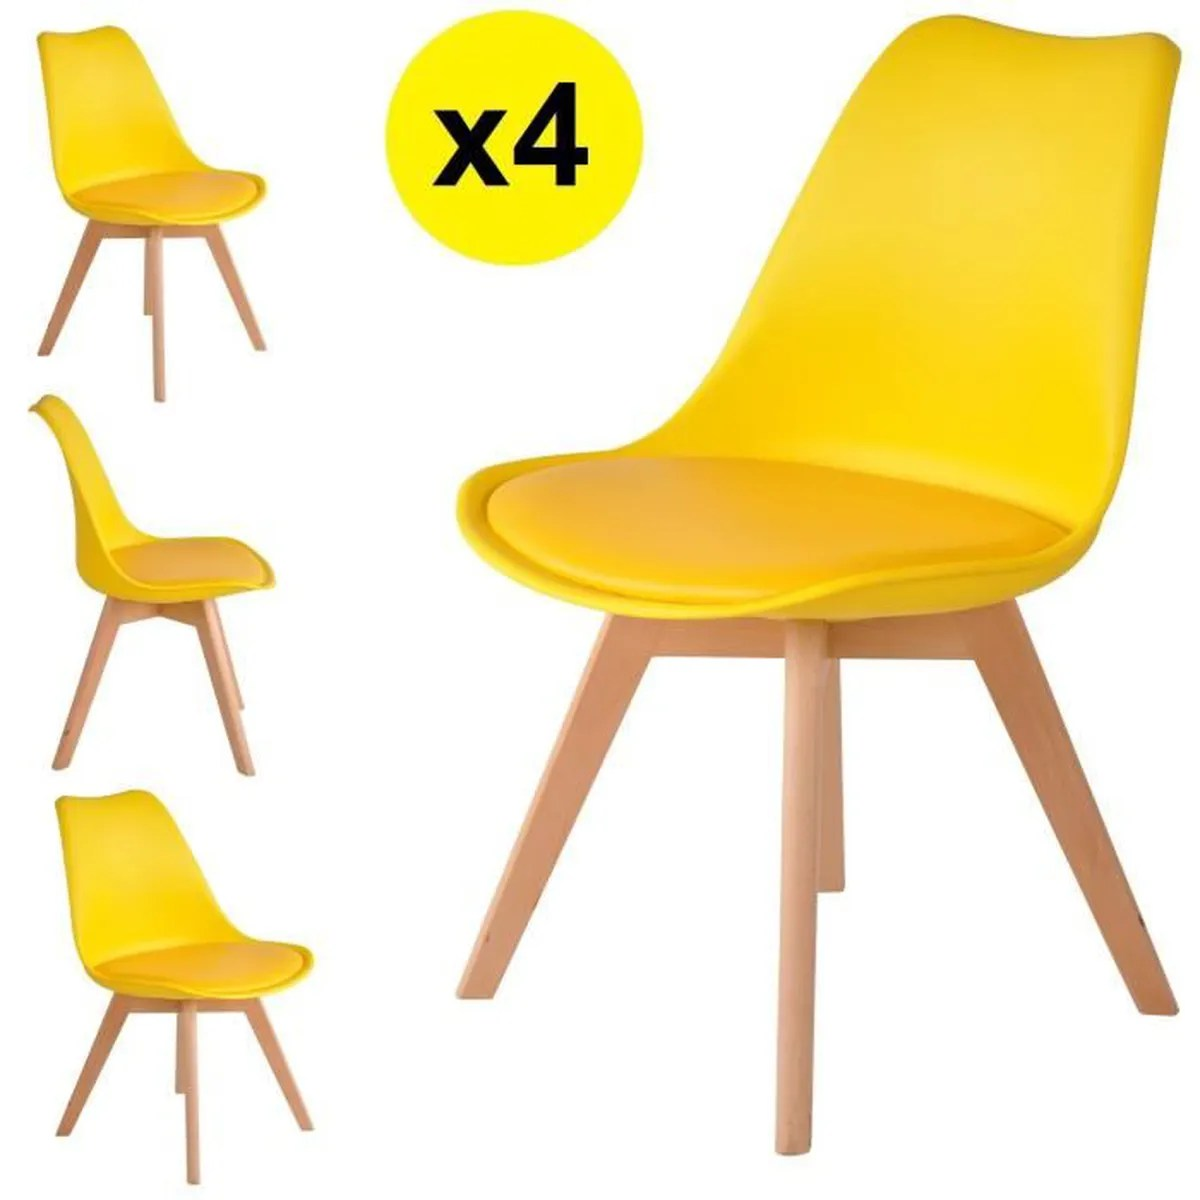 Lot Chaise Scandinave Chaise Scandinave Jaune Achat Vente Chaise Scandinave Jaune